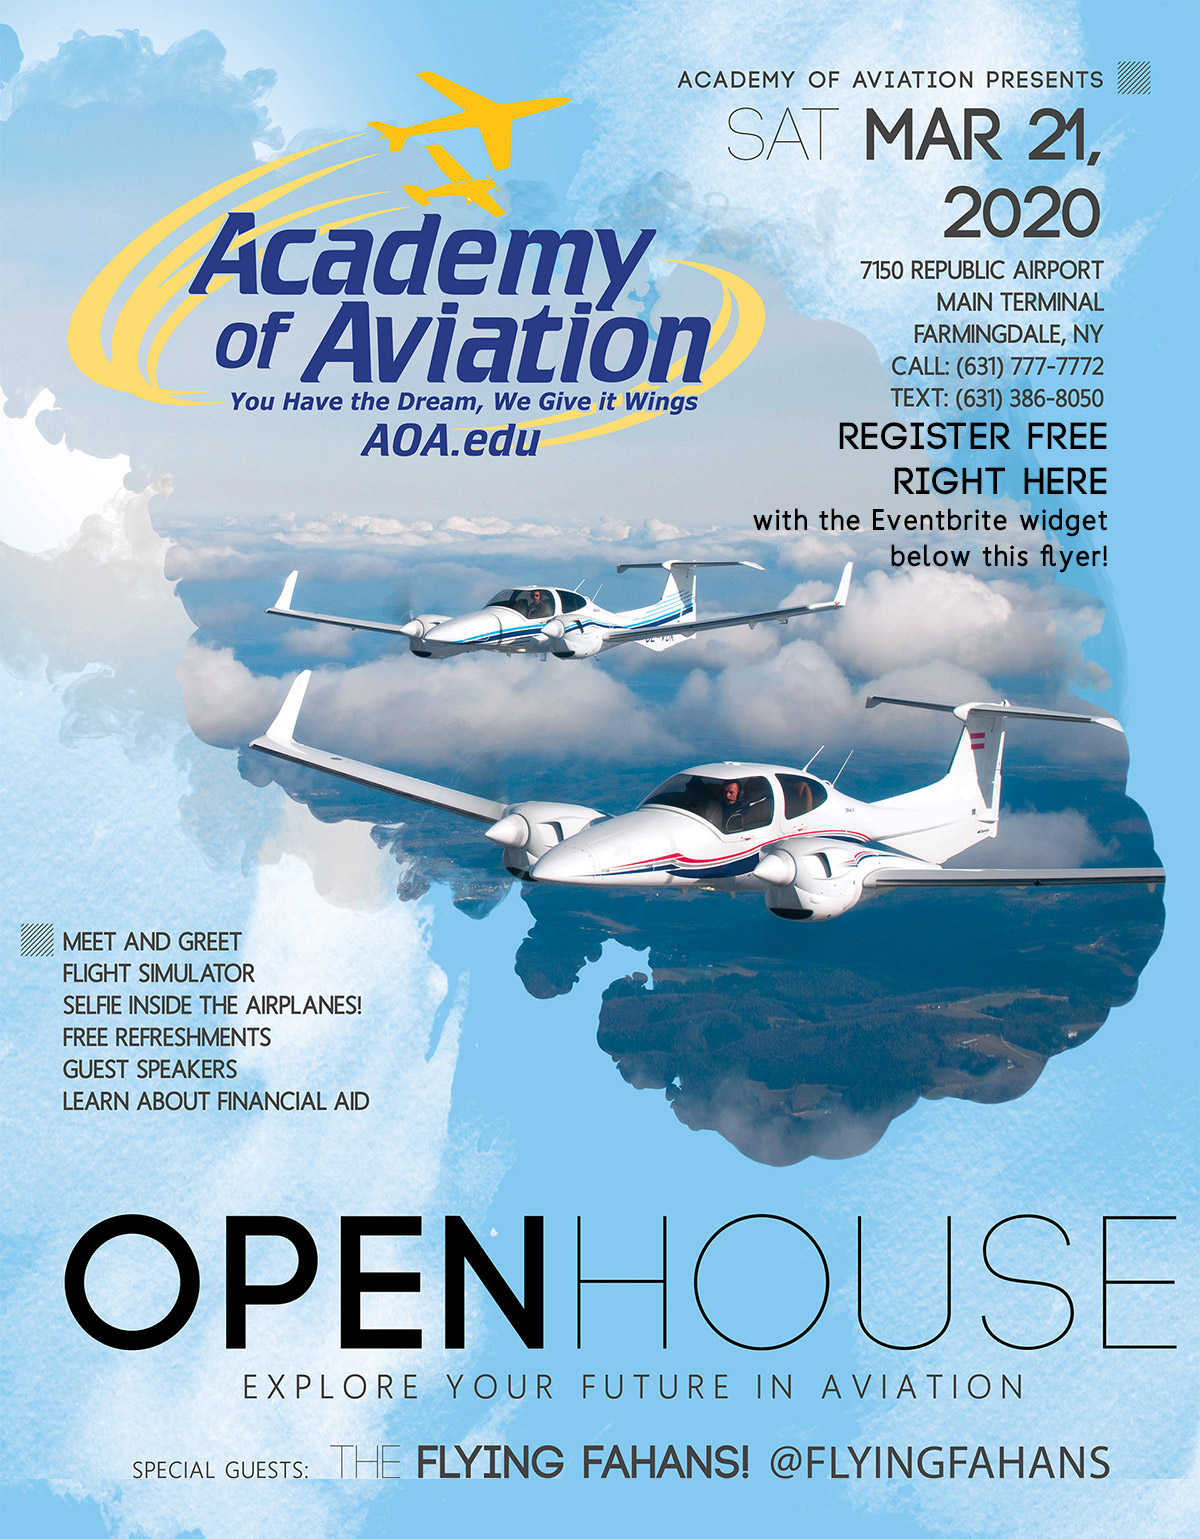 Academy of Aviation Open House